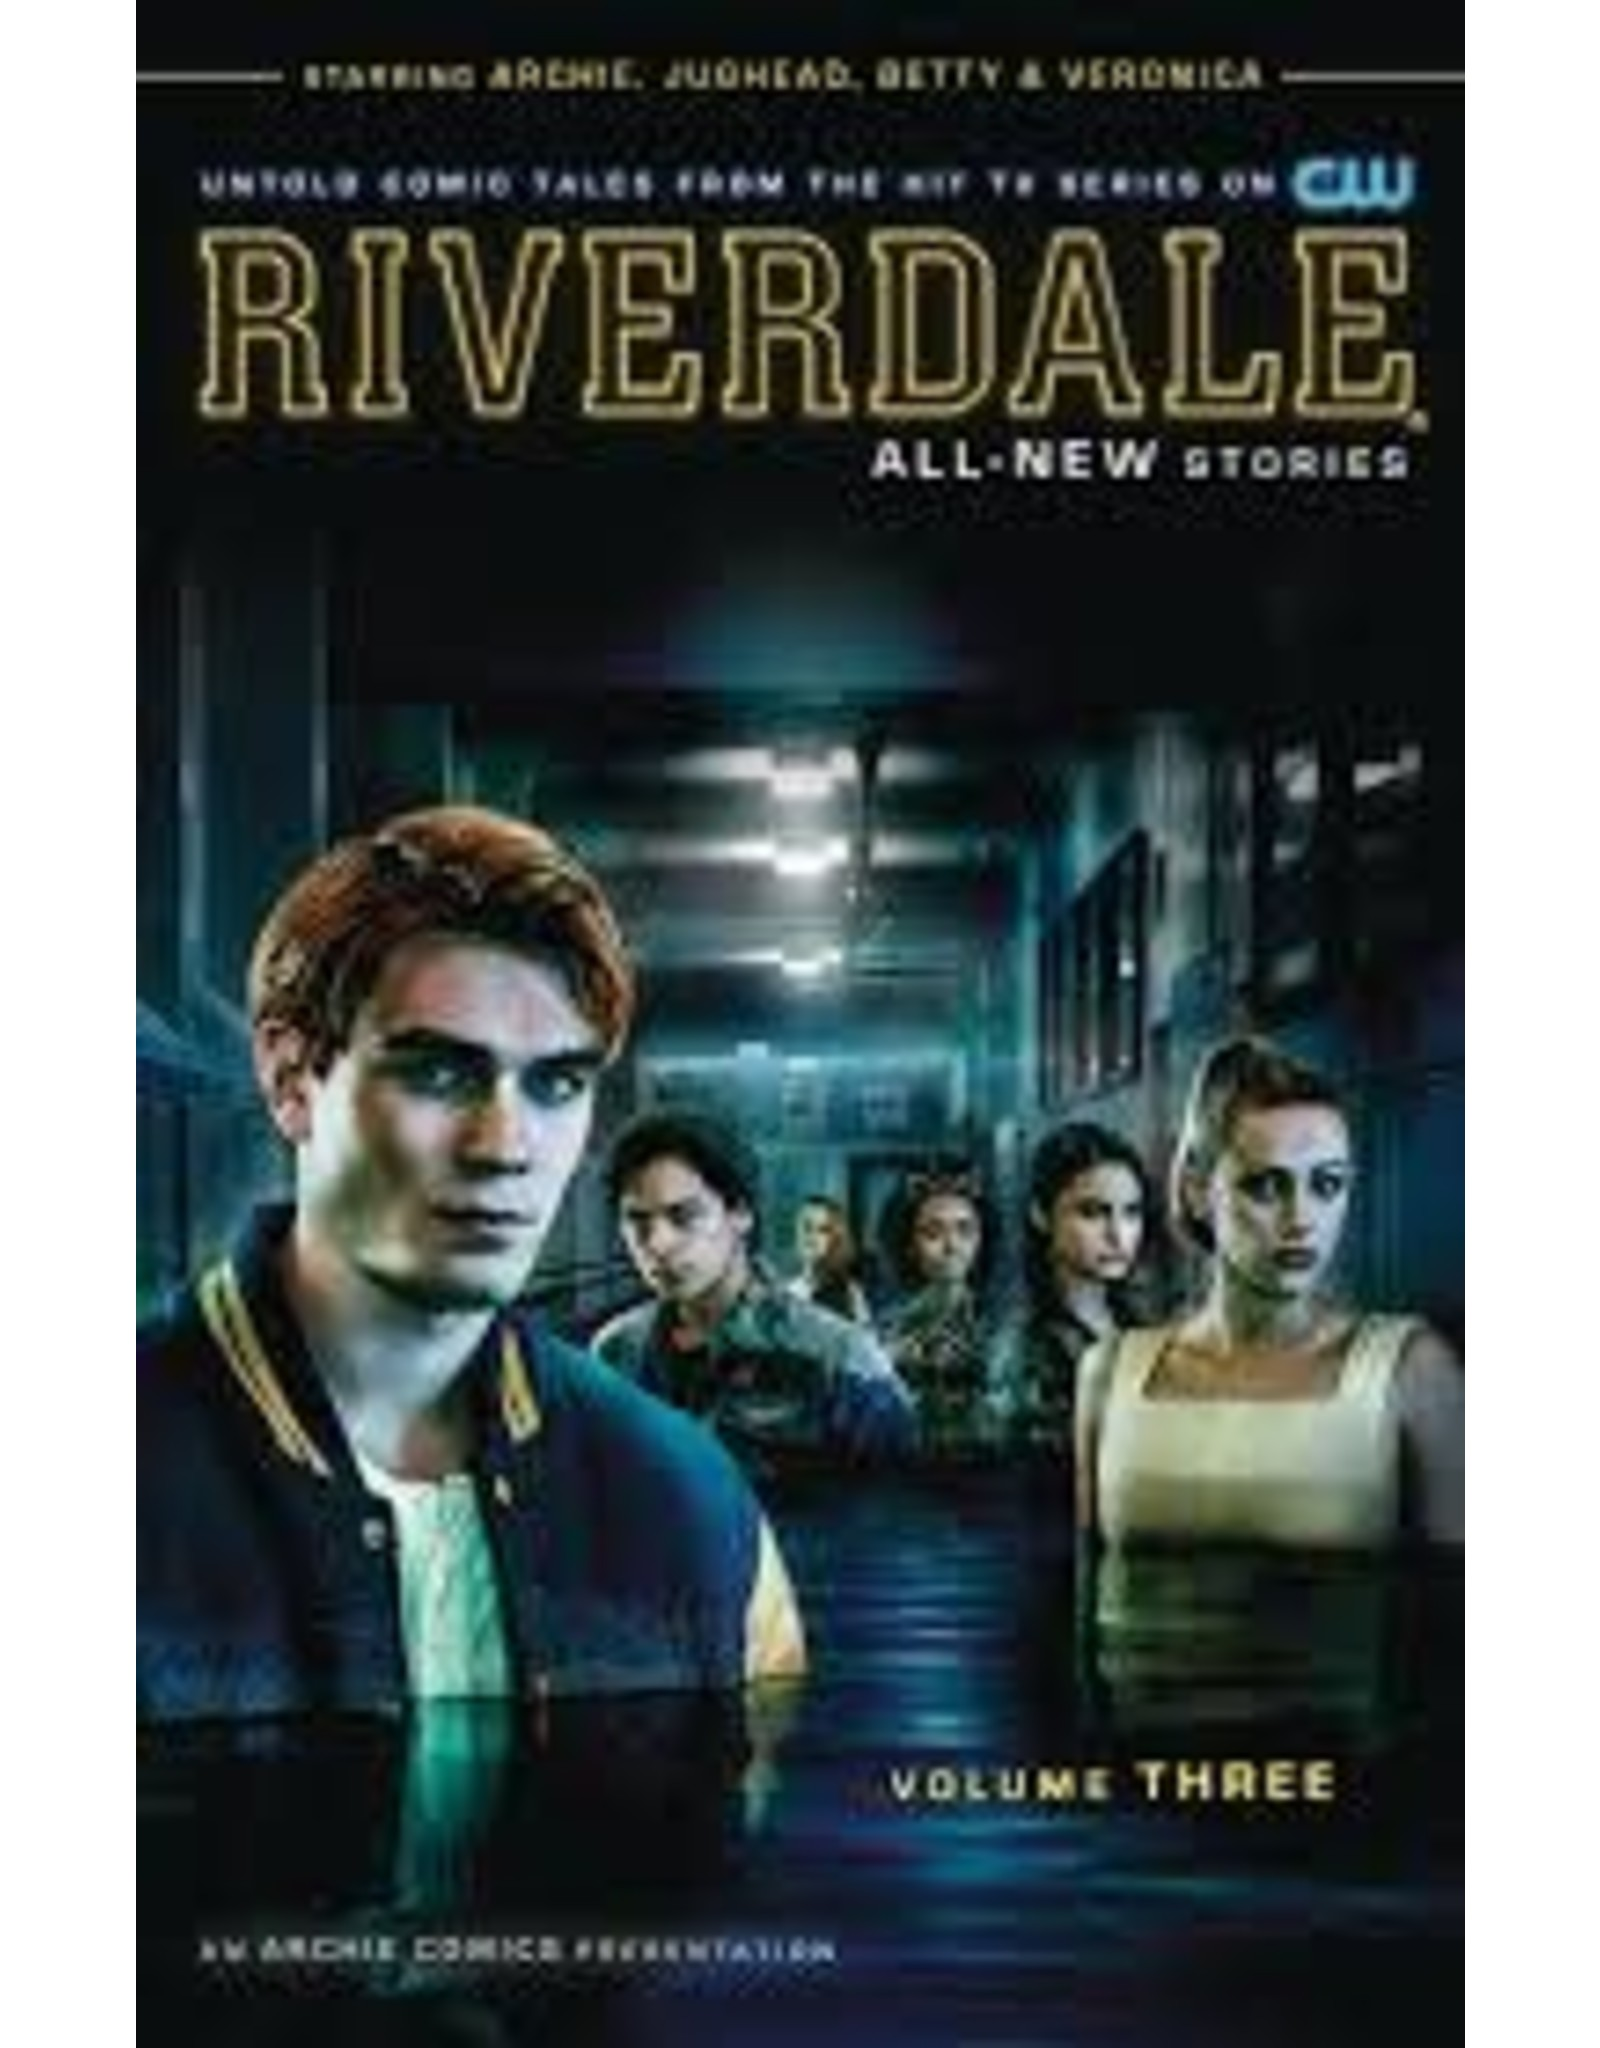 ARCHIE COMIC PUBLICATIONS RIVERDALE TP VOL 03